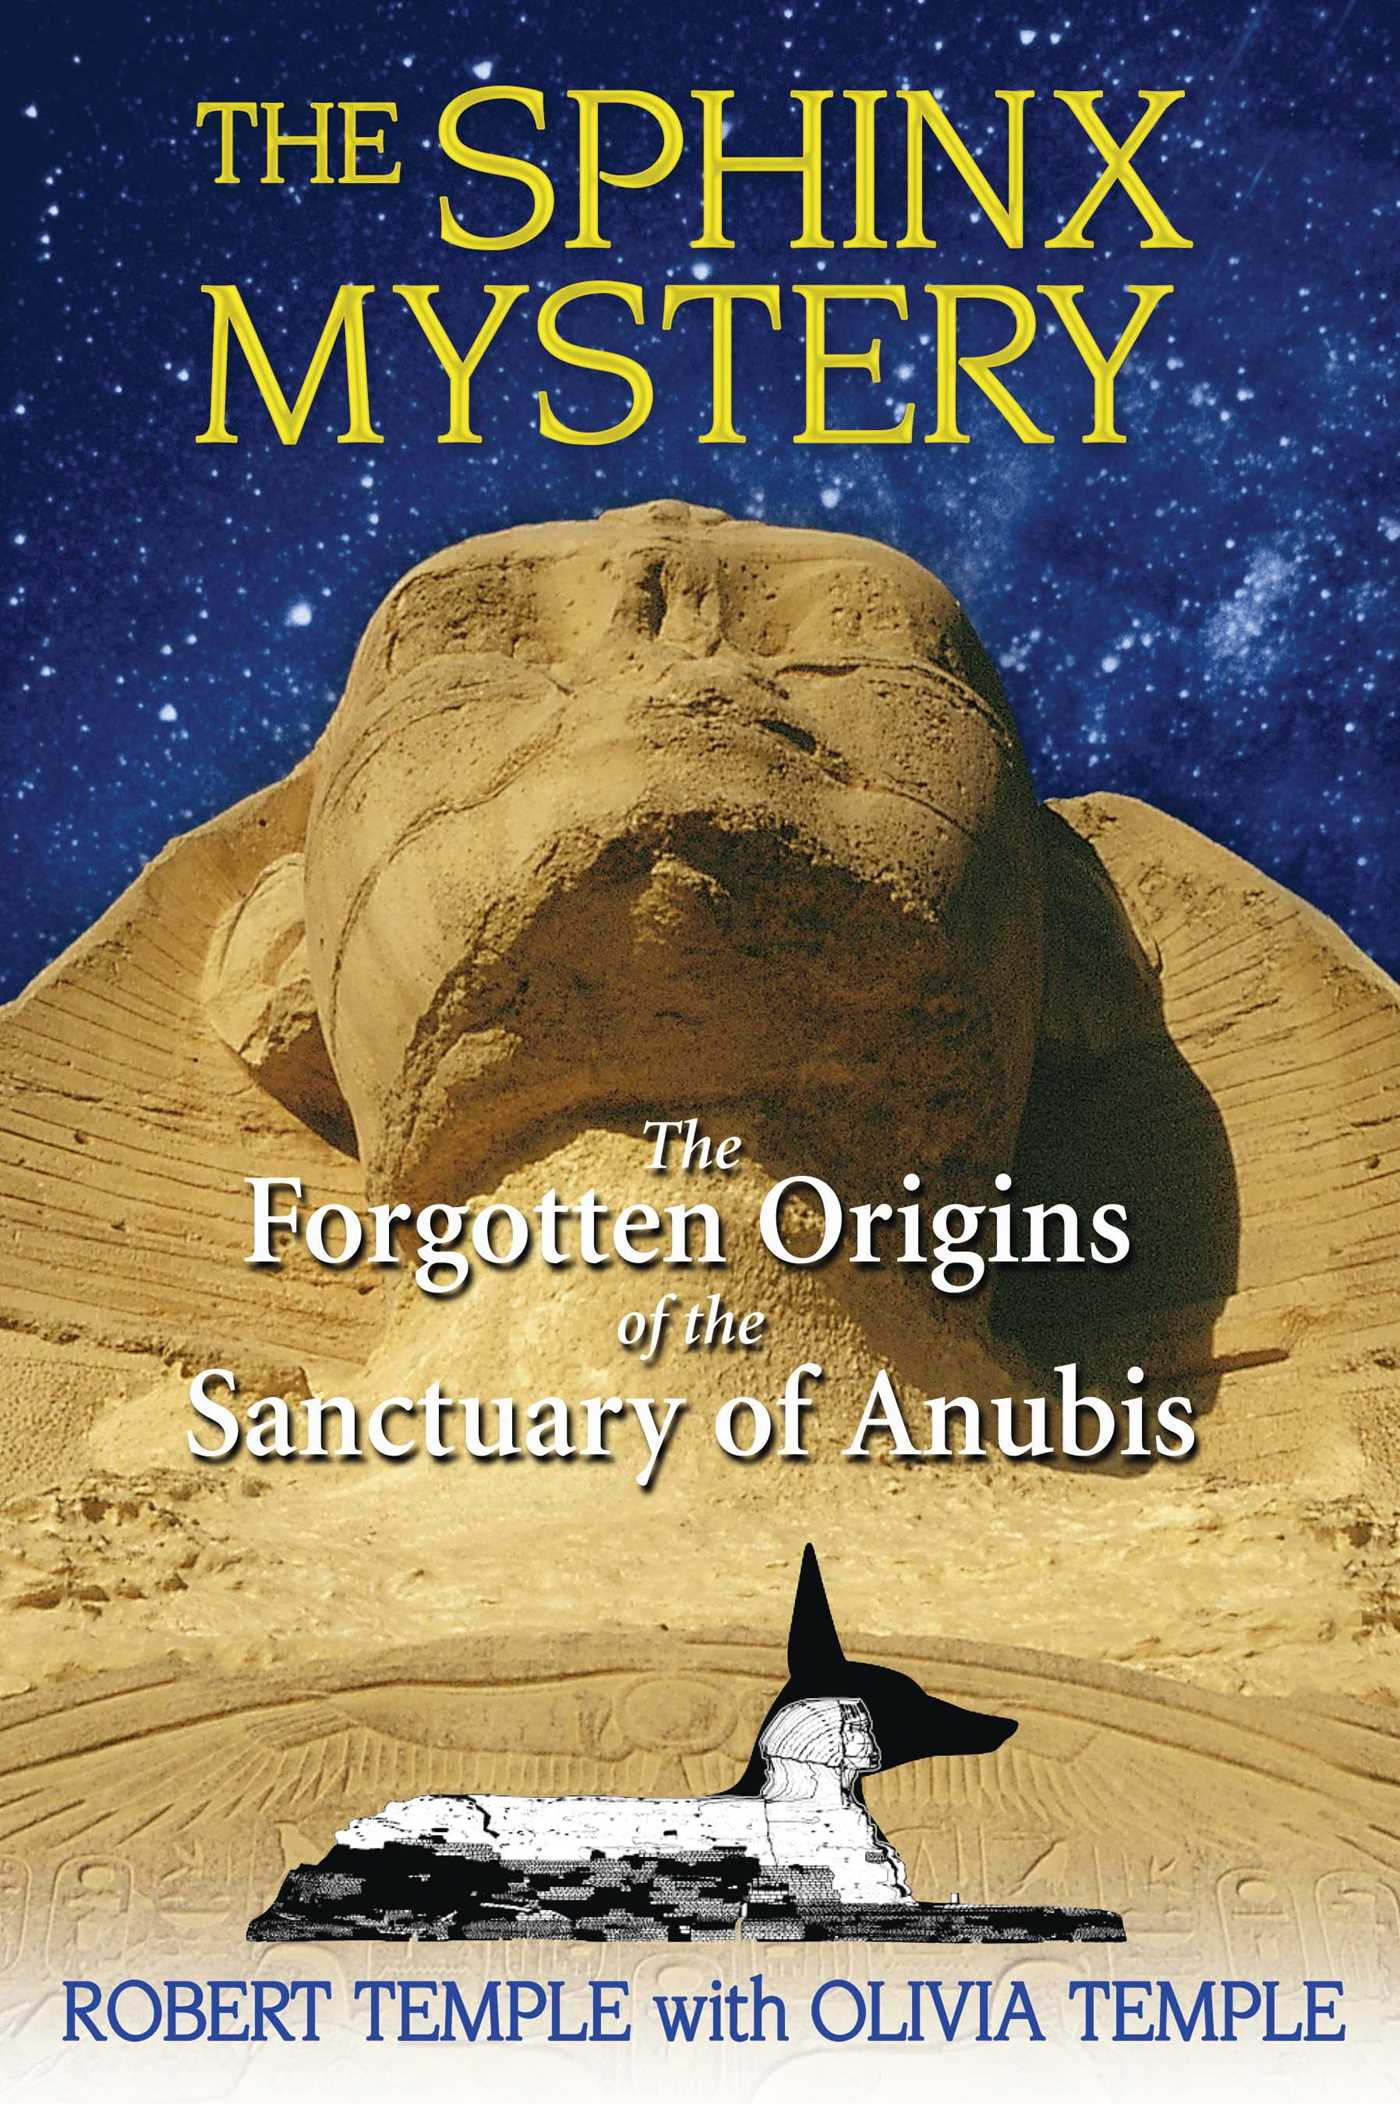 The sphinx mystery 9781594772719 hr